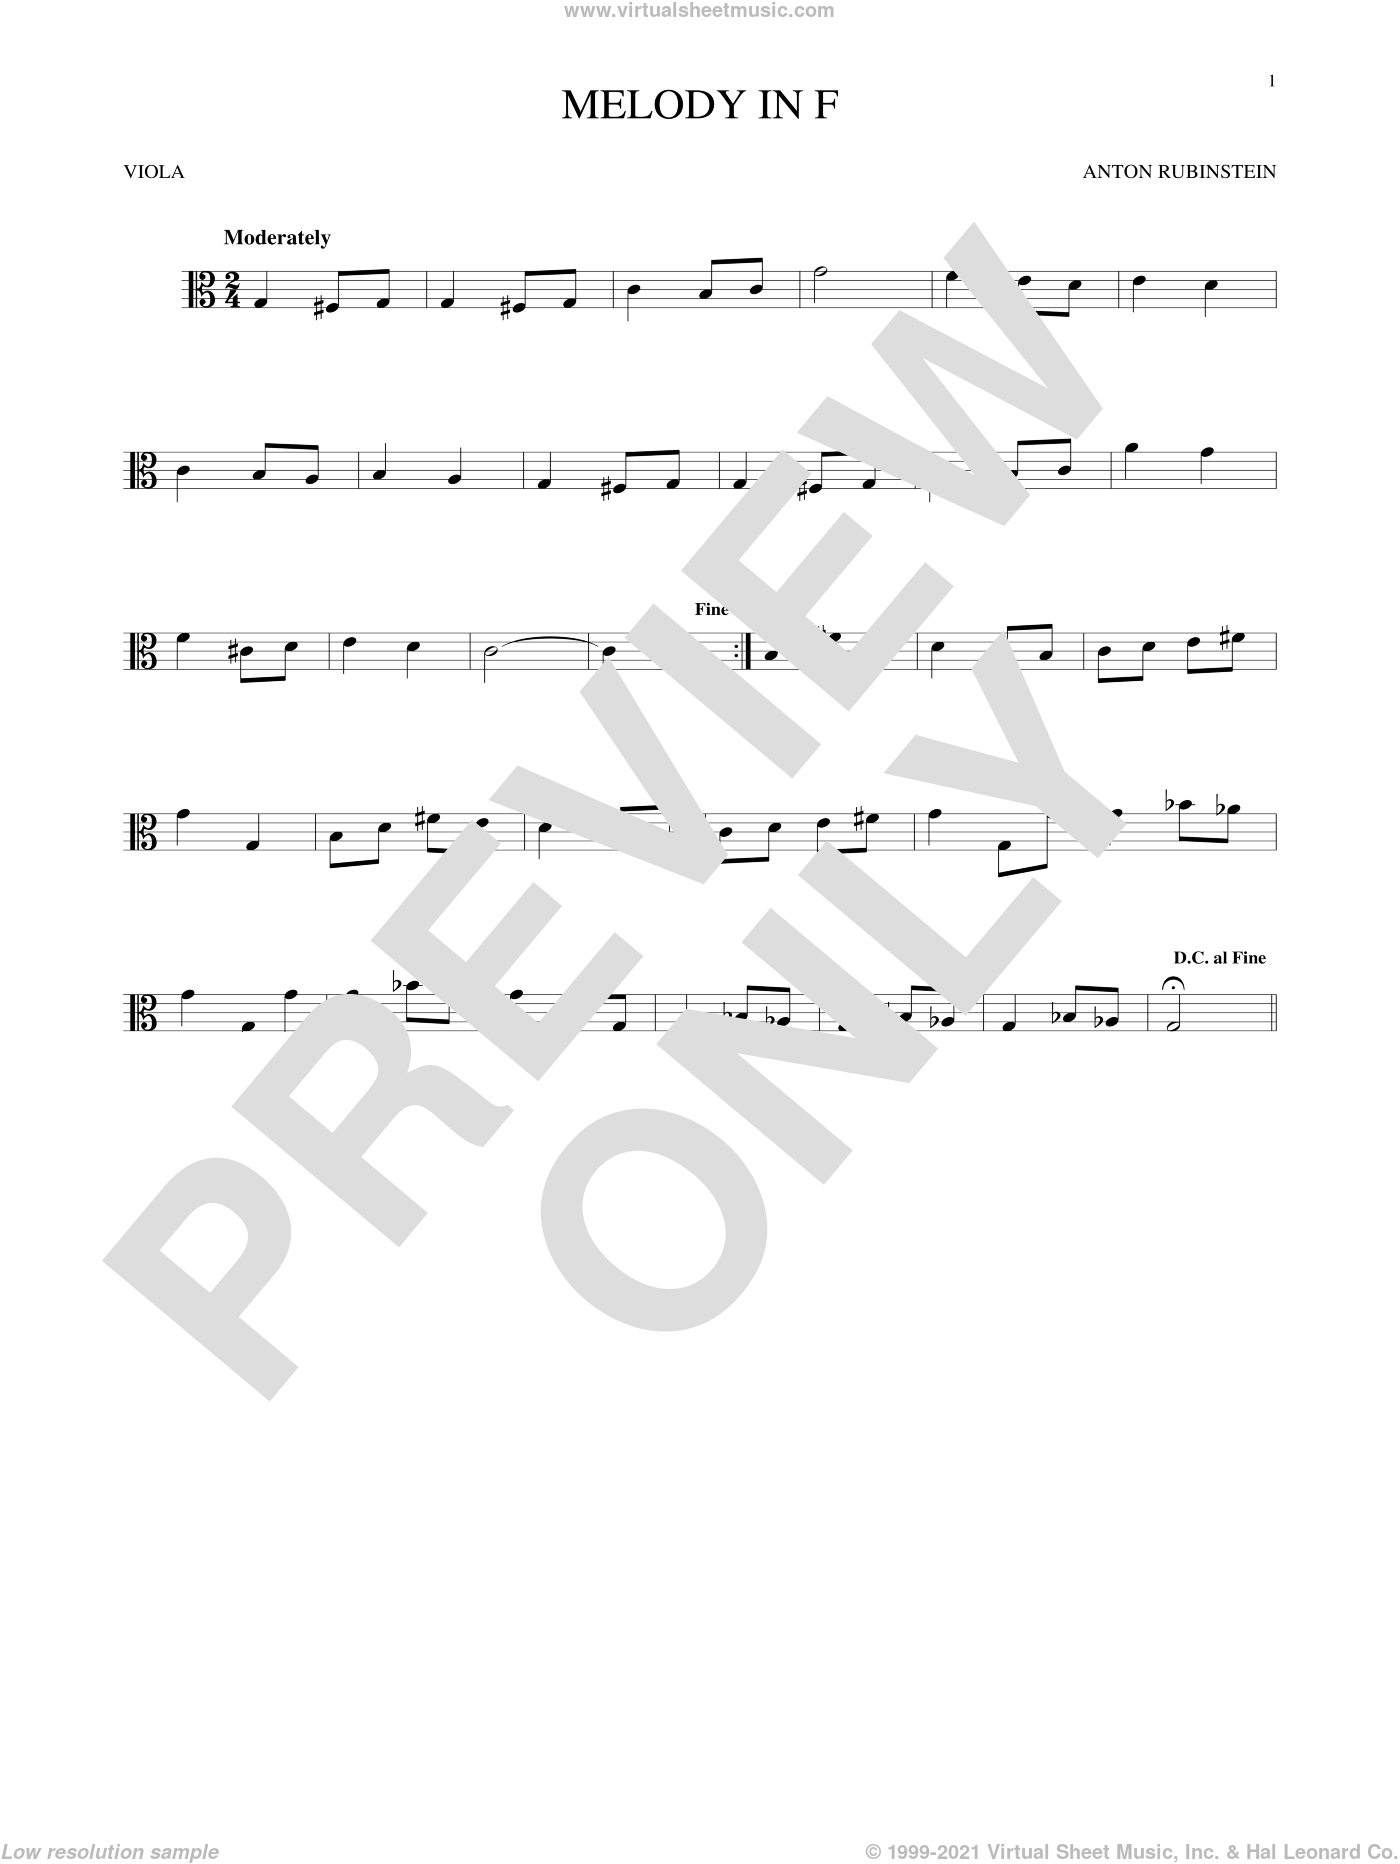 Melody In F sheet music for viola solo by Anton Rubinstein, classical score, intermediate skill level